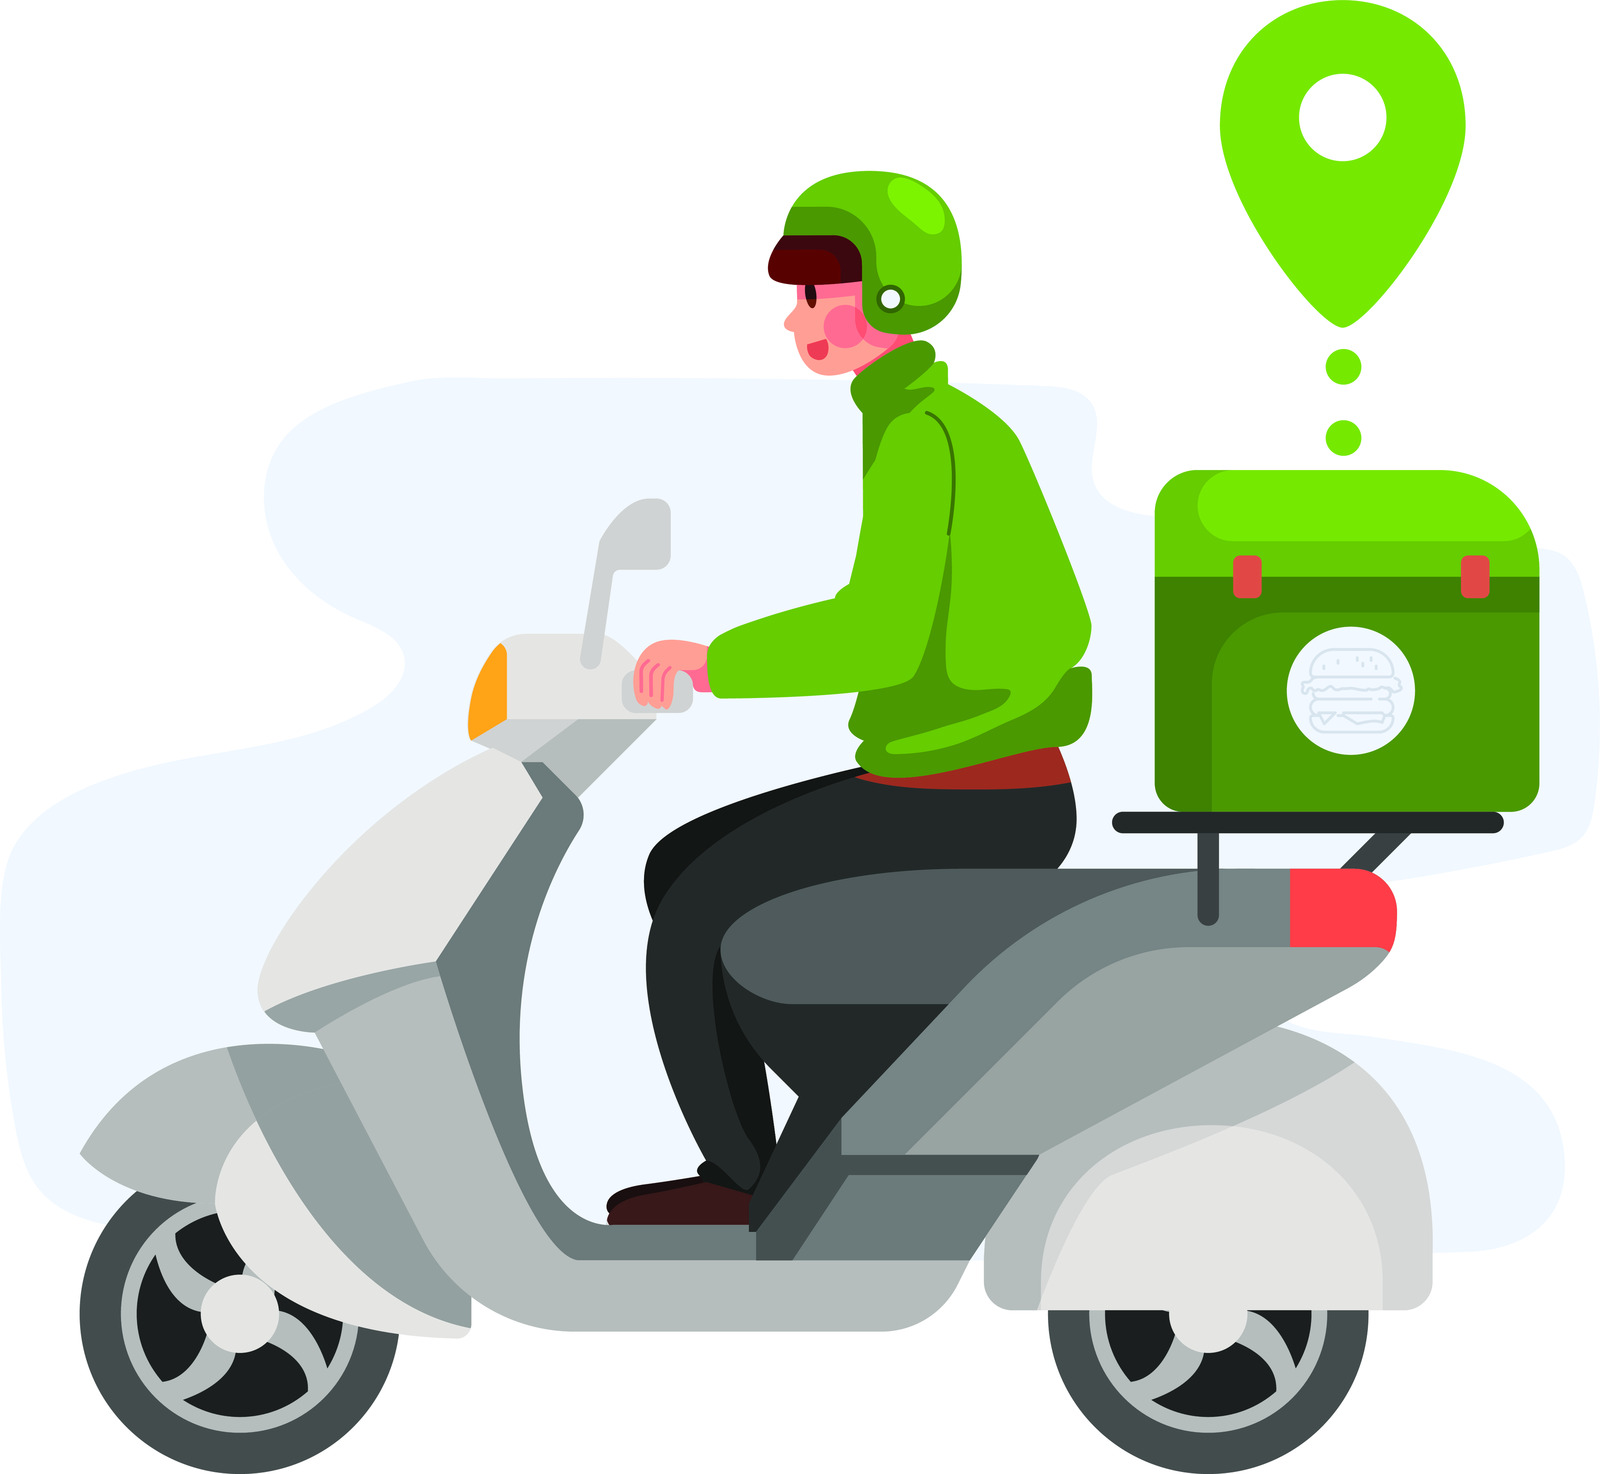 Fast food delivery service